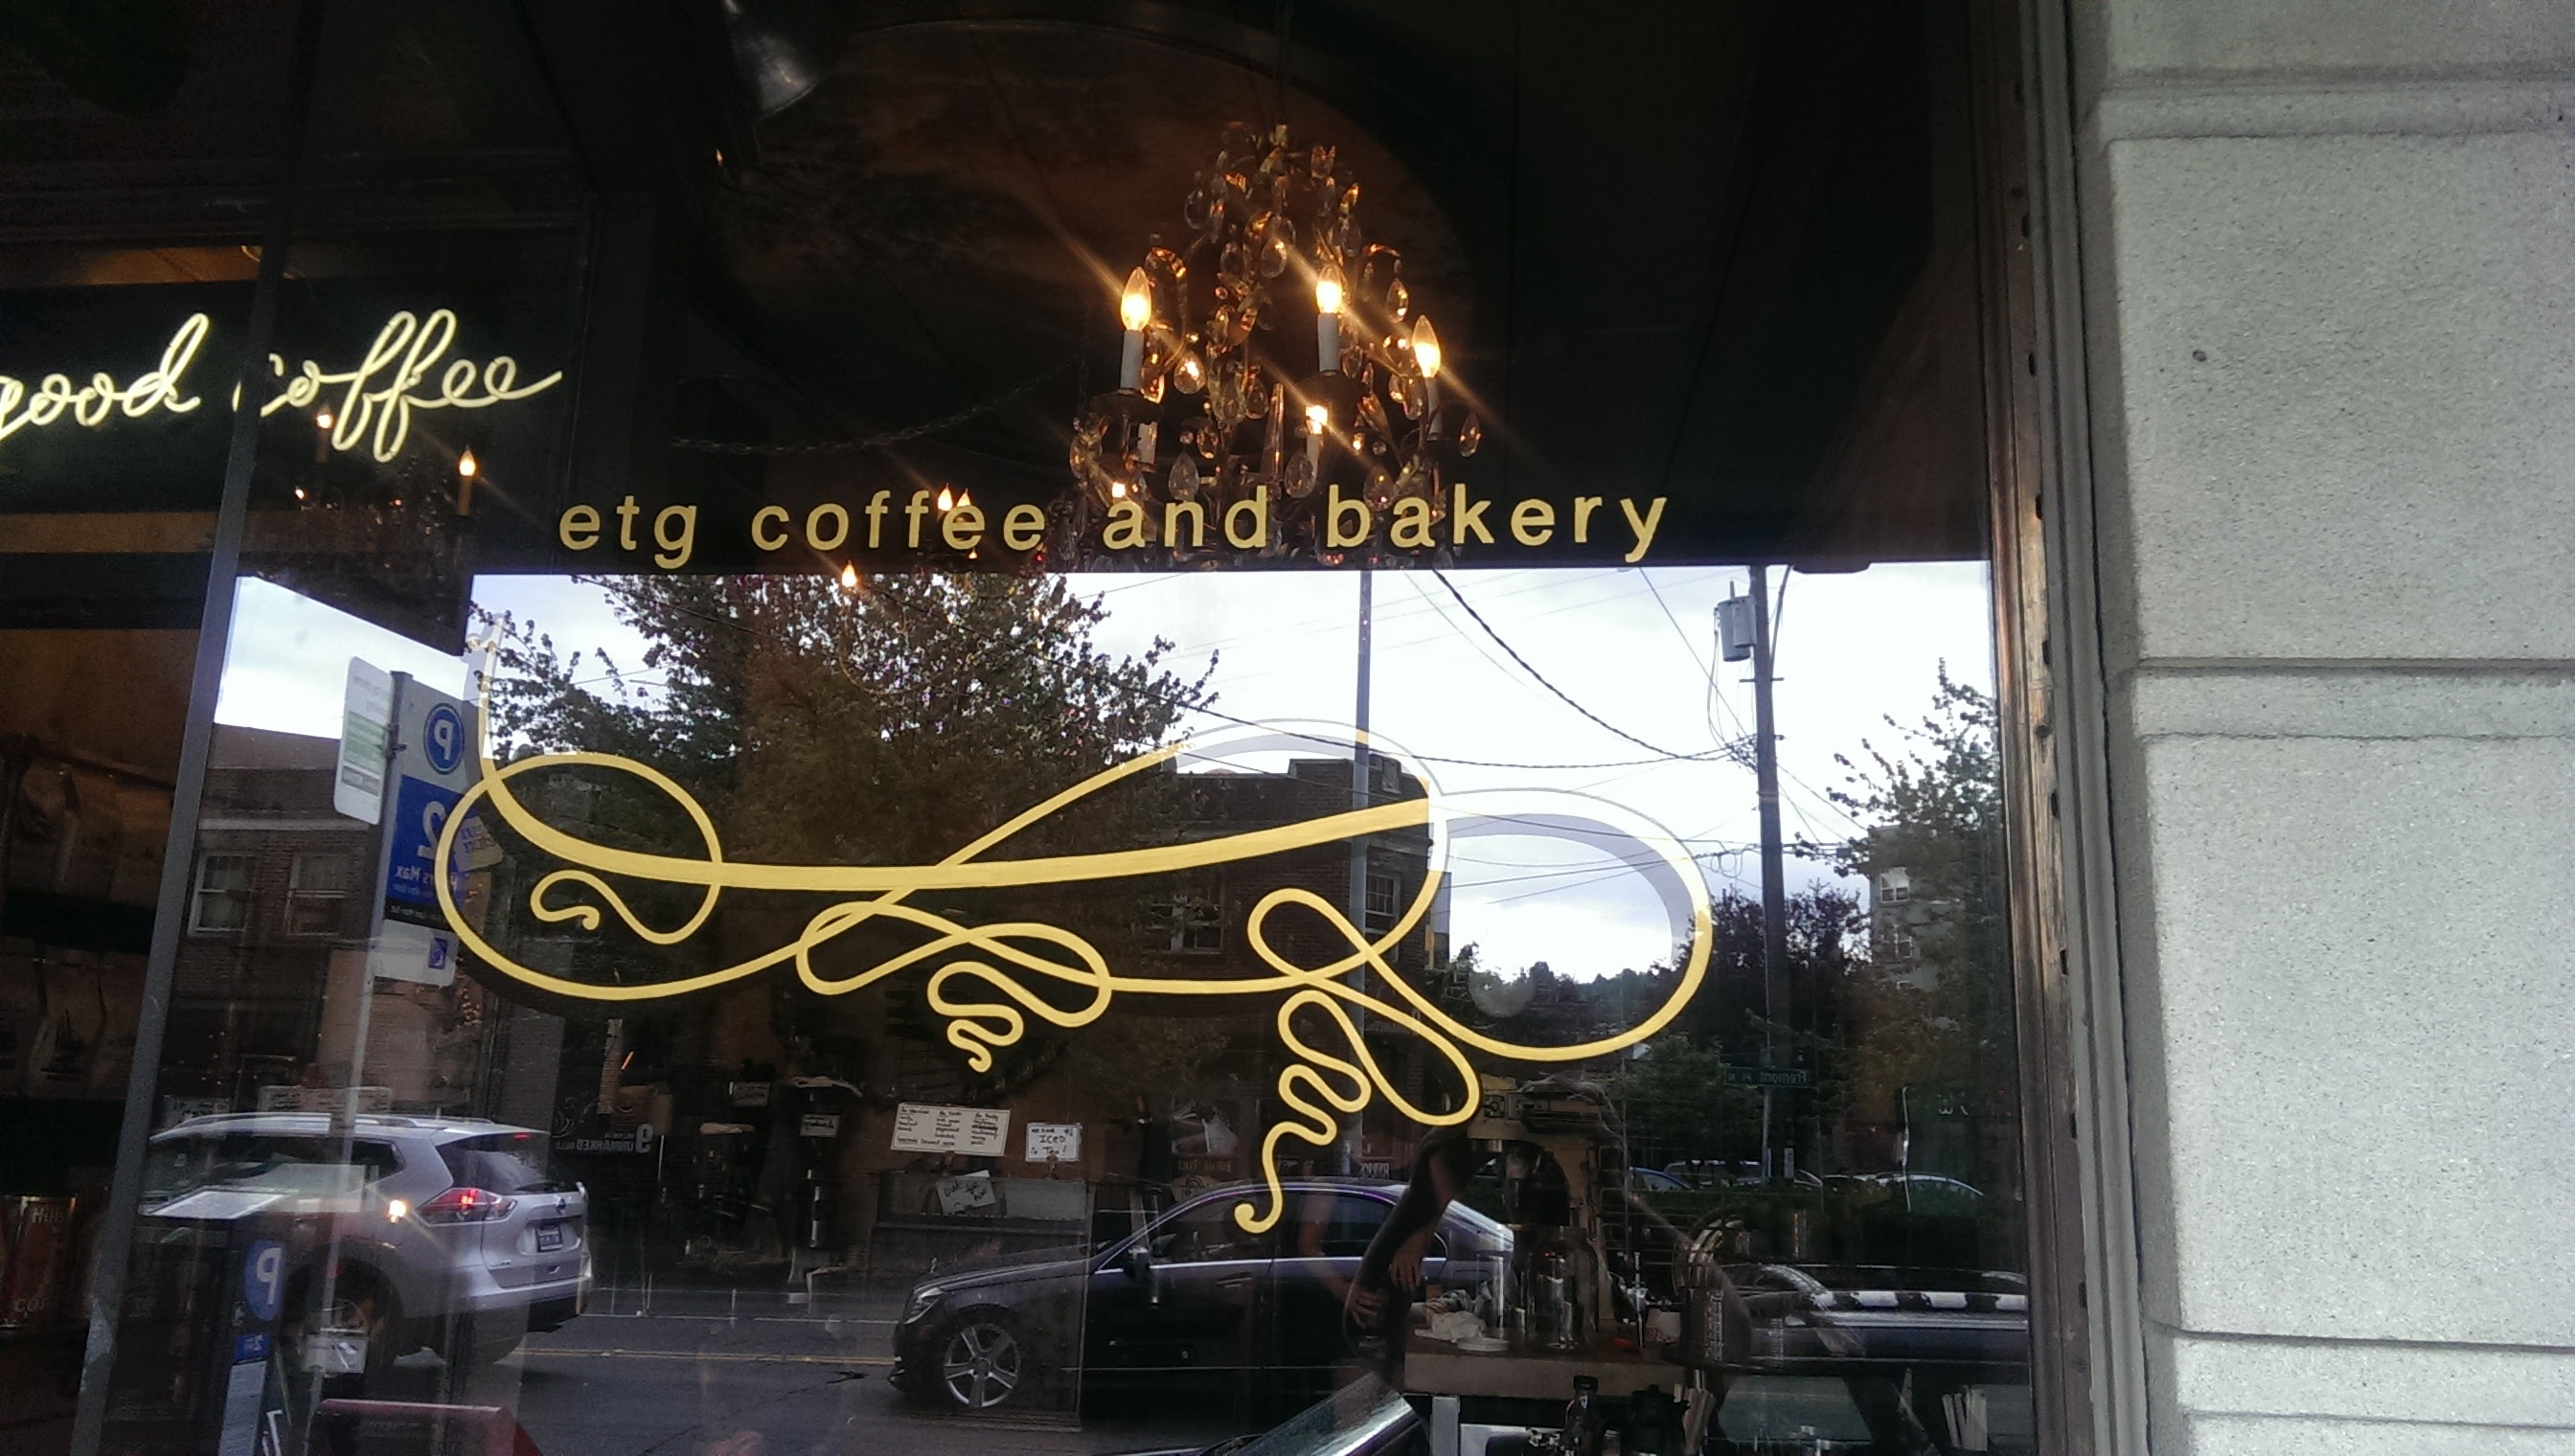 Fits 2 and a Half Coffee Lovers, ETG Coffee and Bakery, Fremont